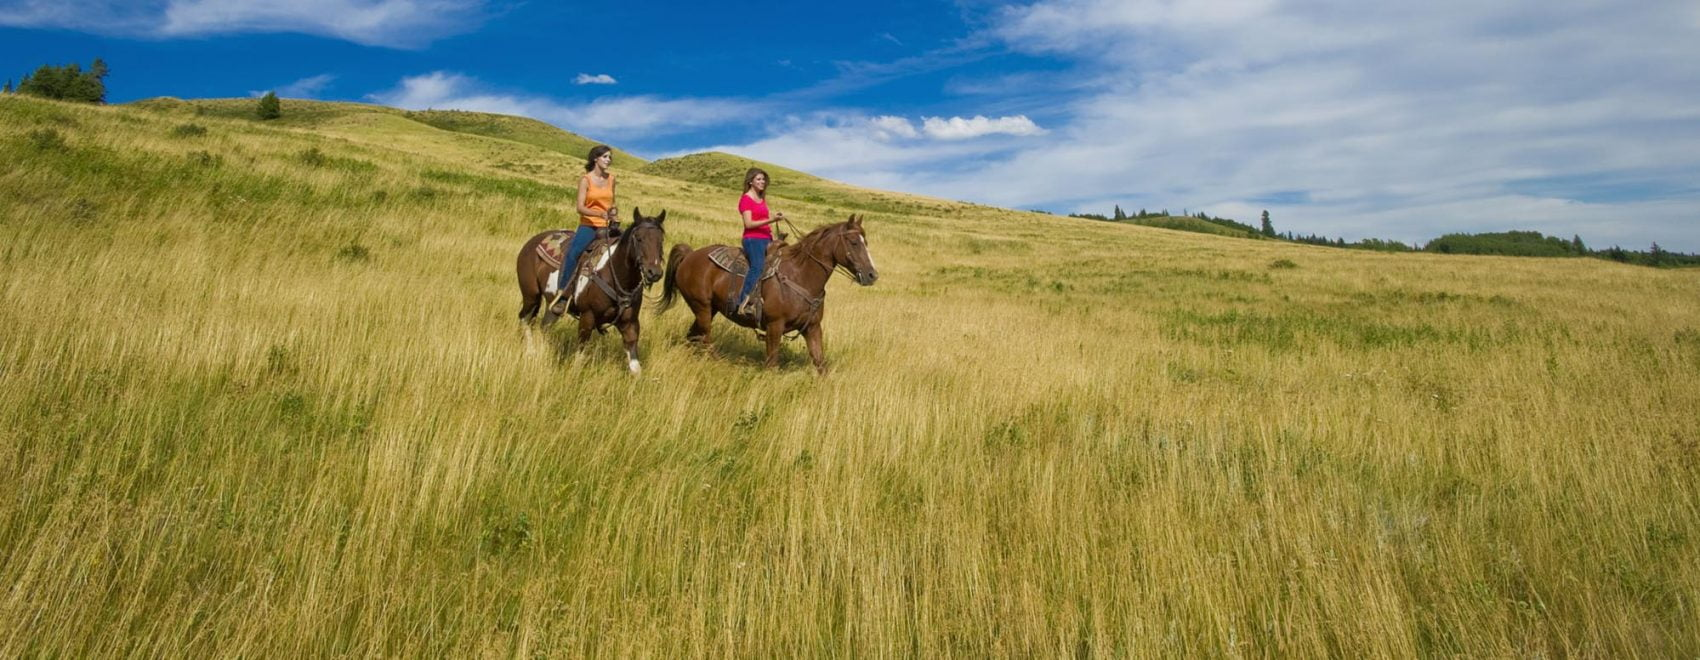 Historic Reesor Ranch, near Cypress Hills Interprovincial Park - West Block Wilderness Area Photo credit: Tourism Saskatchewan/Paul Austring